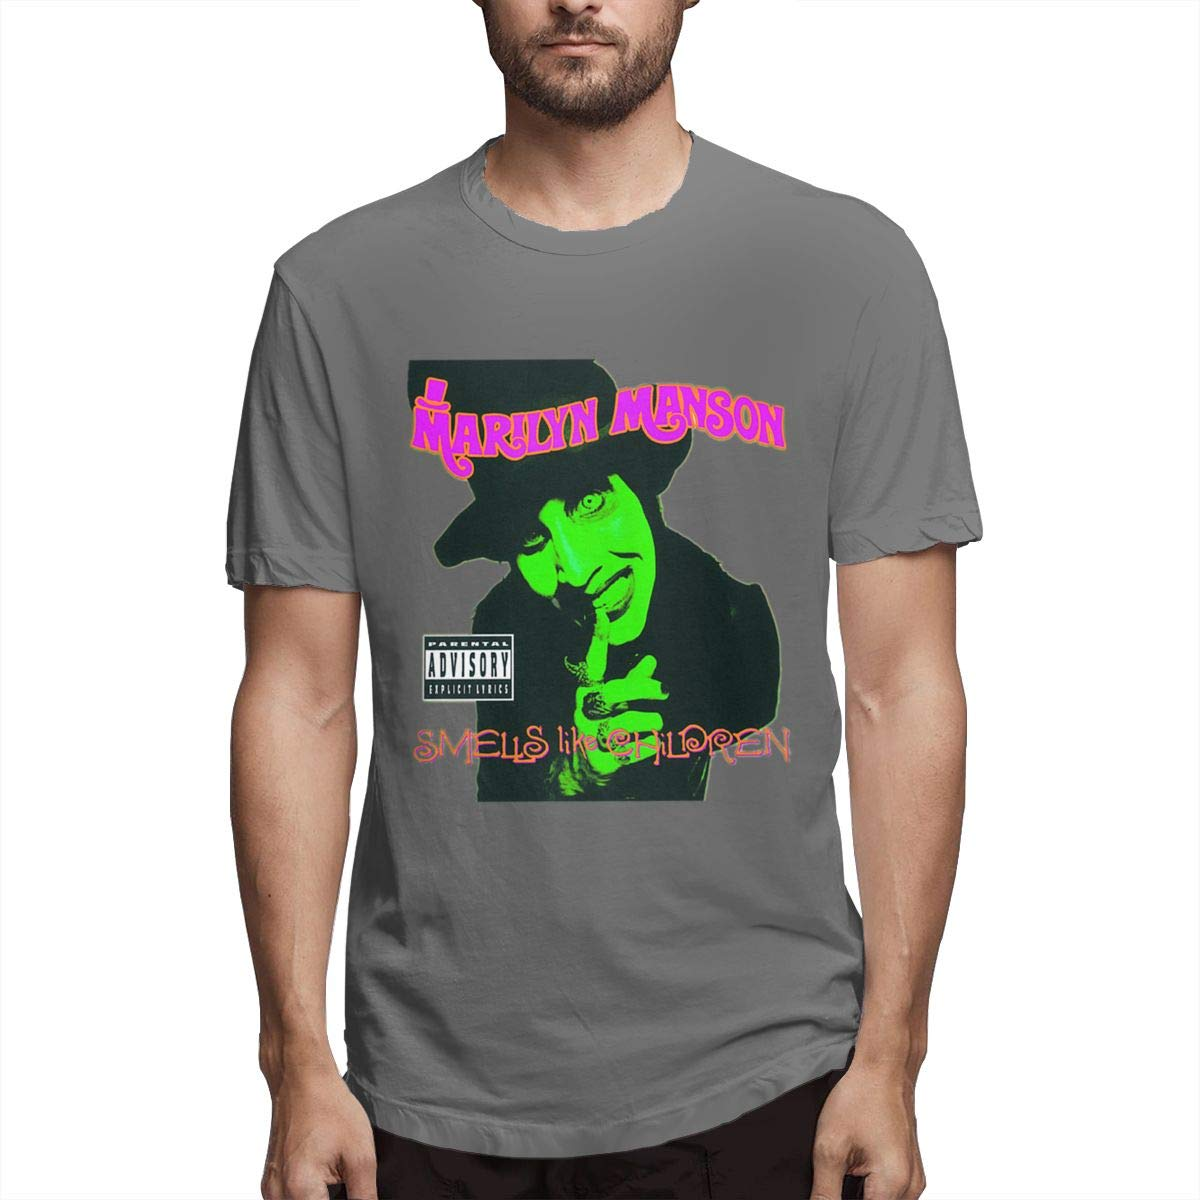 Fishoceany Wearability T-Shirts with Marilyn Manson Smells Like Children Pattern Printed